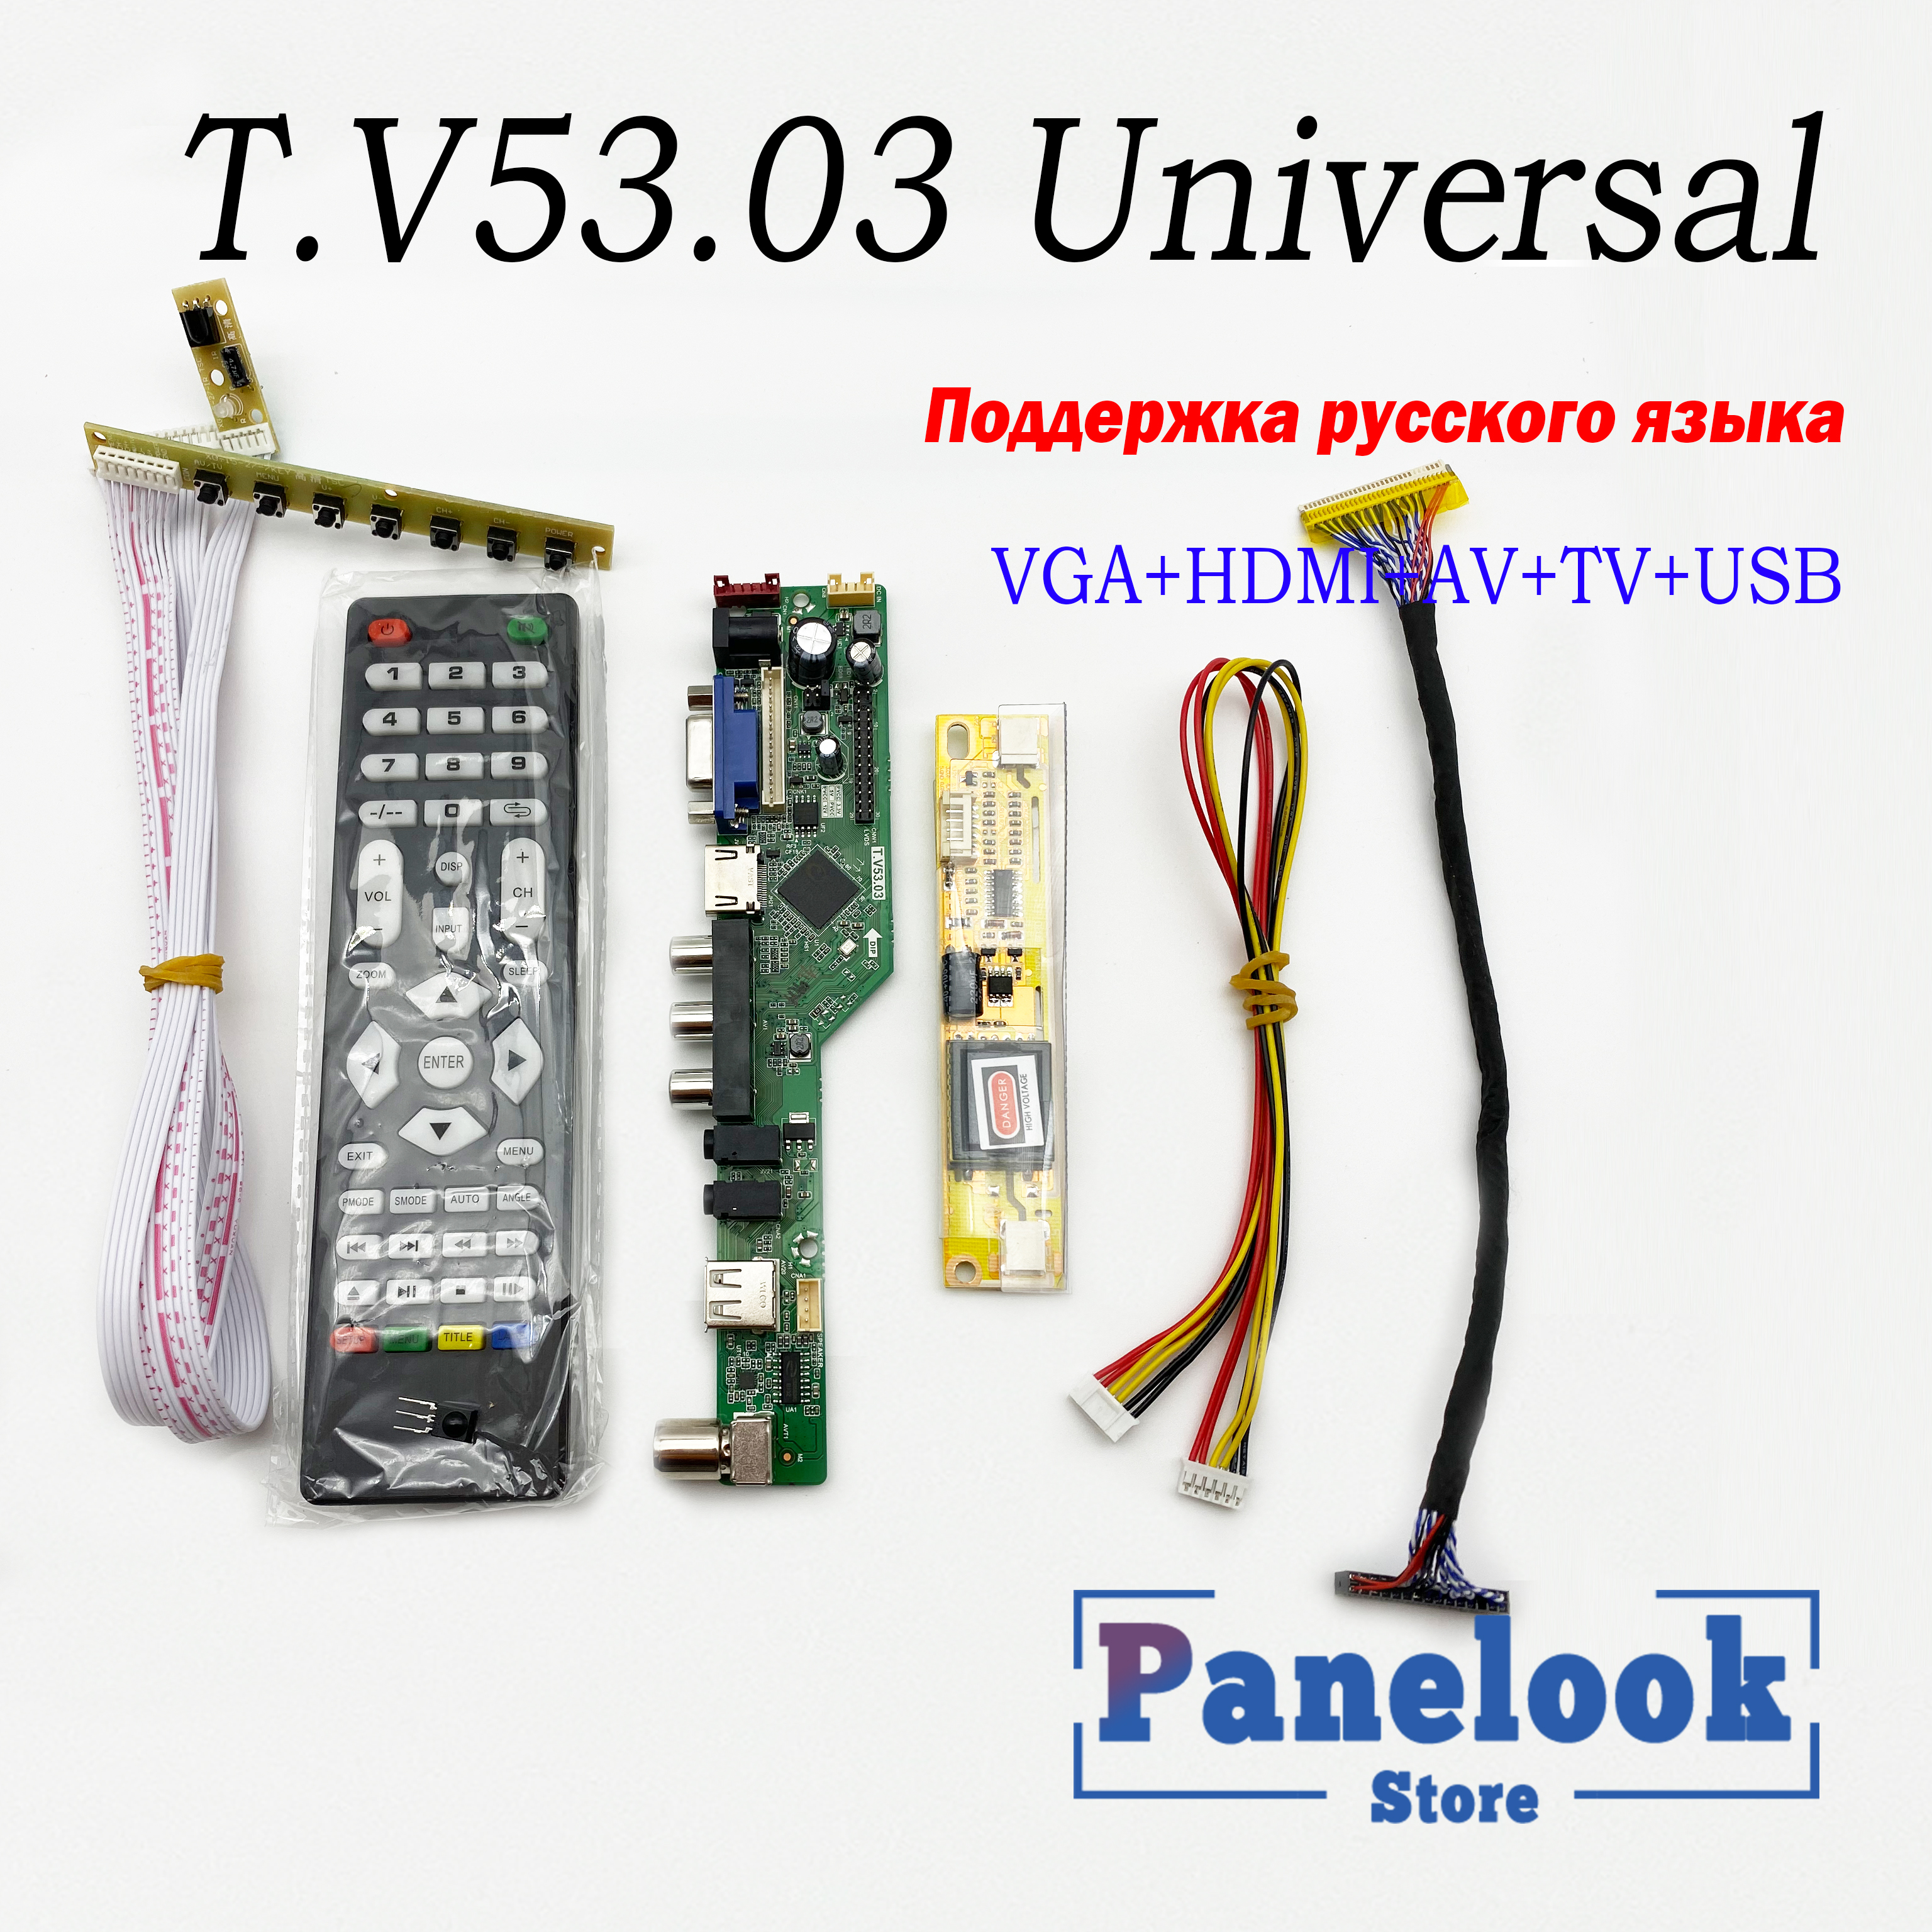 Driver-Board Tv-Controller 2-Lamp-Inverter Universal T.V53.03 Hdmi/usb-Interface LCD title=